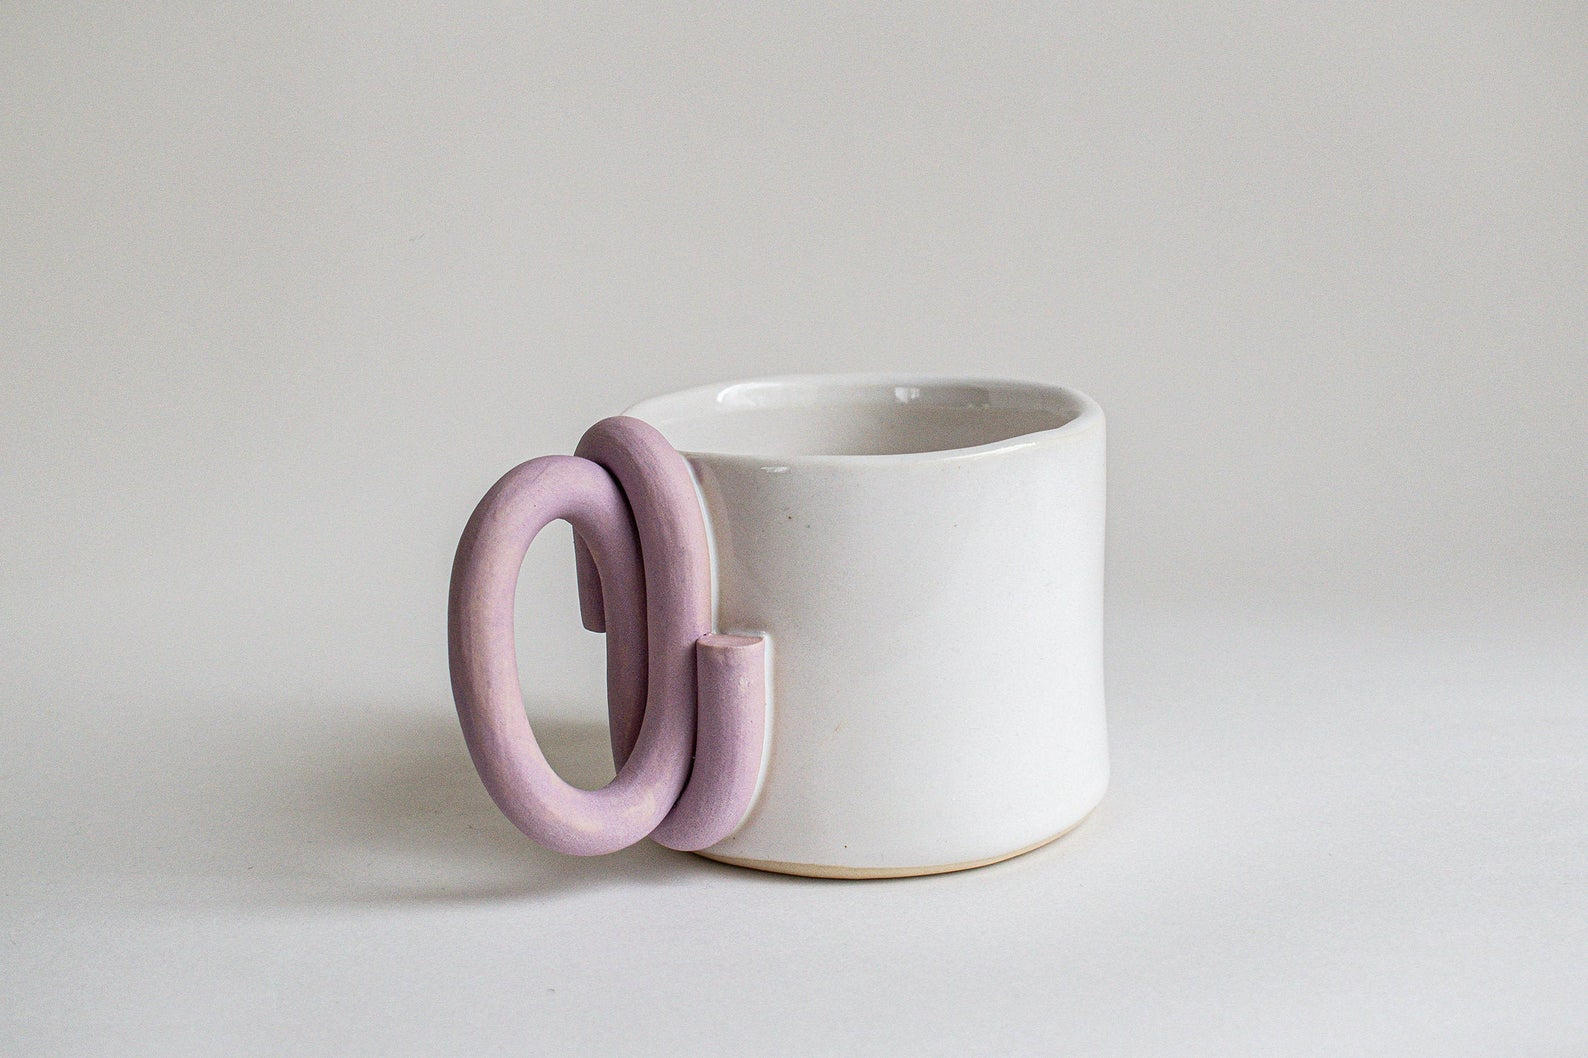 A few ceramic artists whose work I'm loving